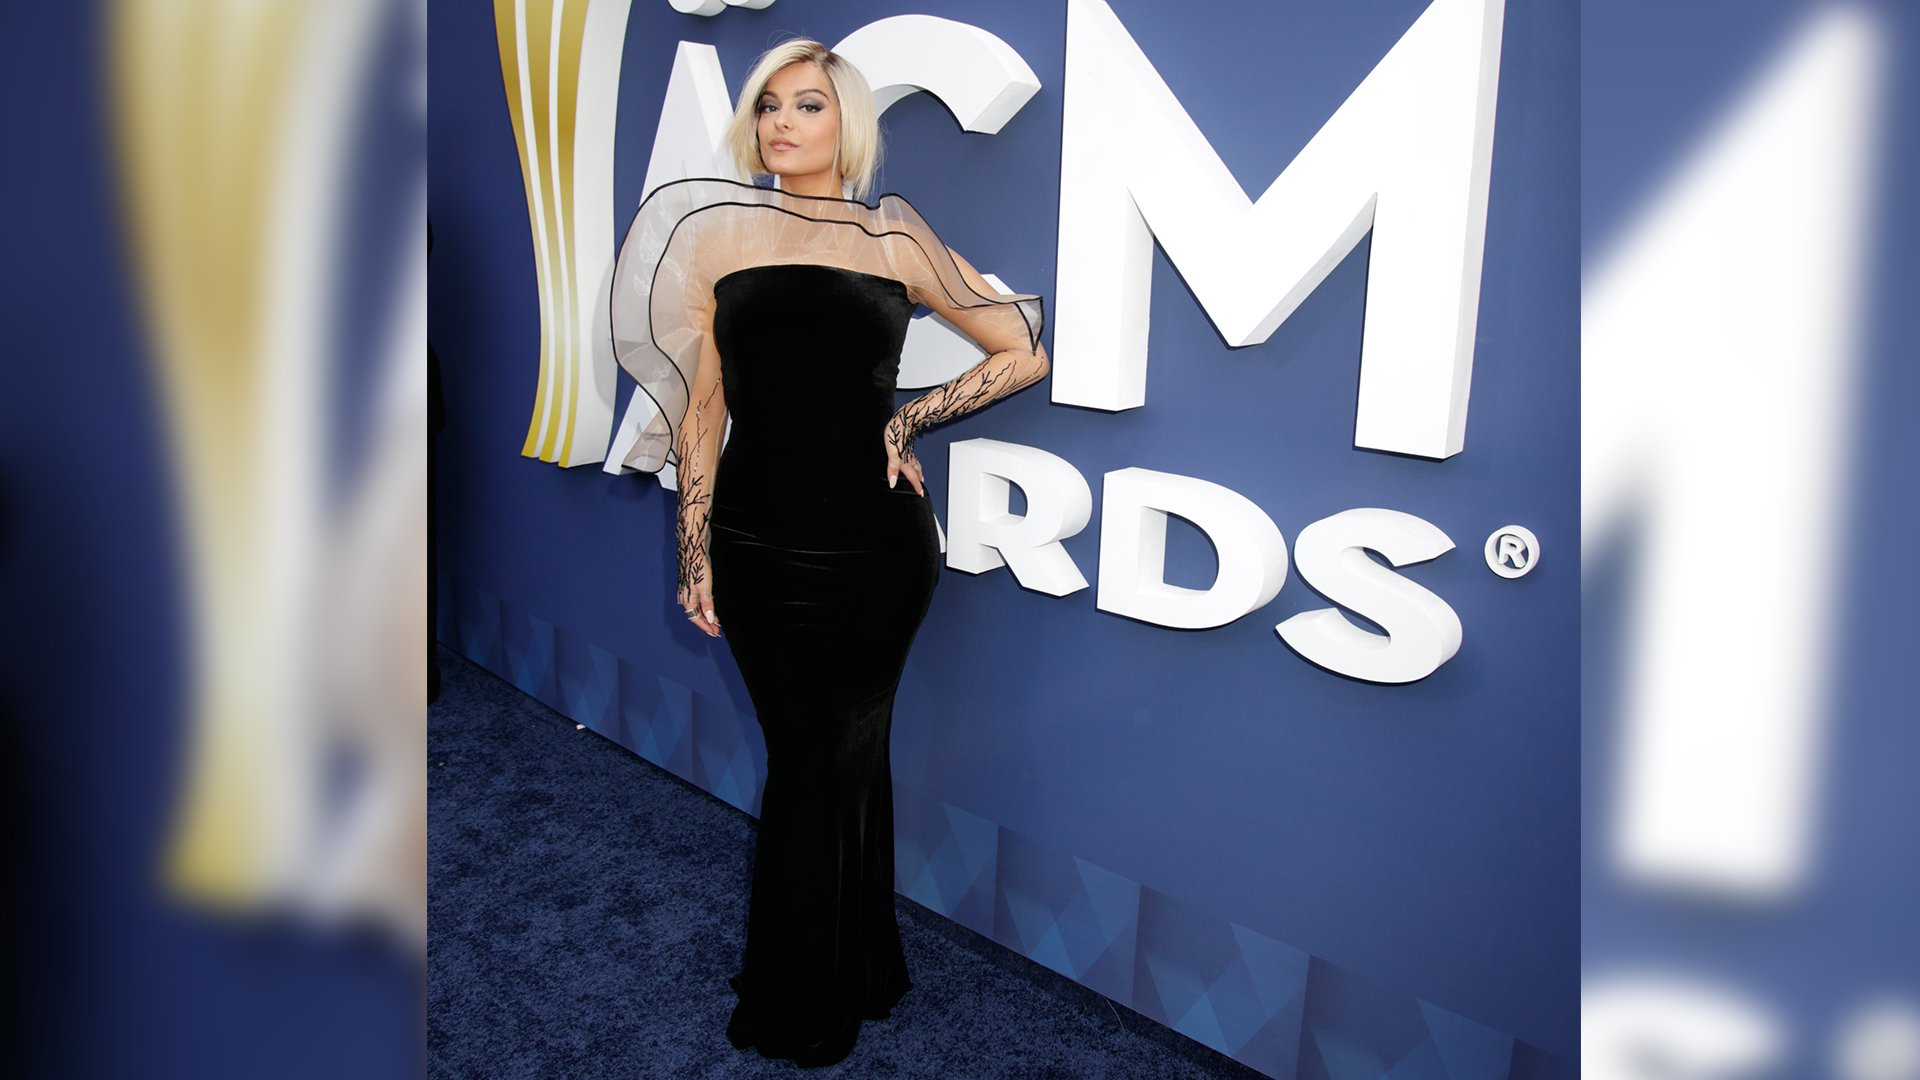 Pop singer Bebe Rexha knows how to make a statement while posing on the ACM red carpet.